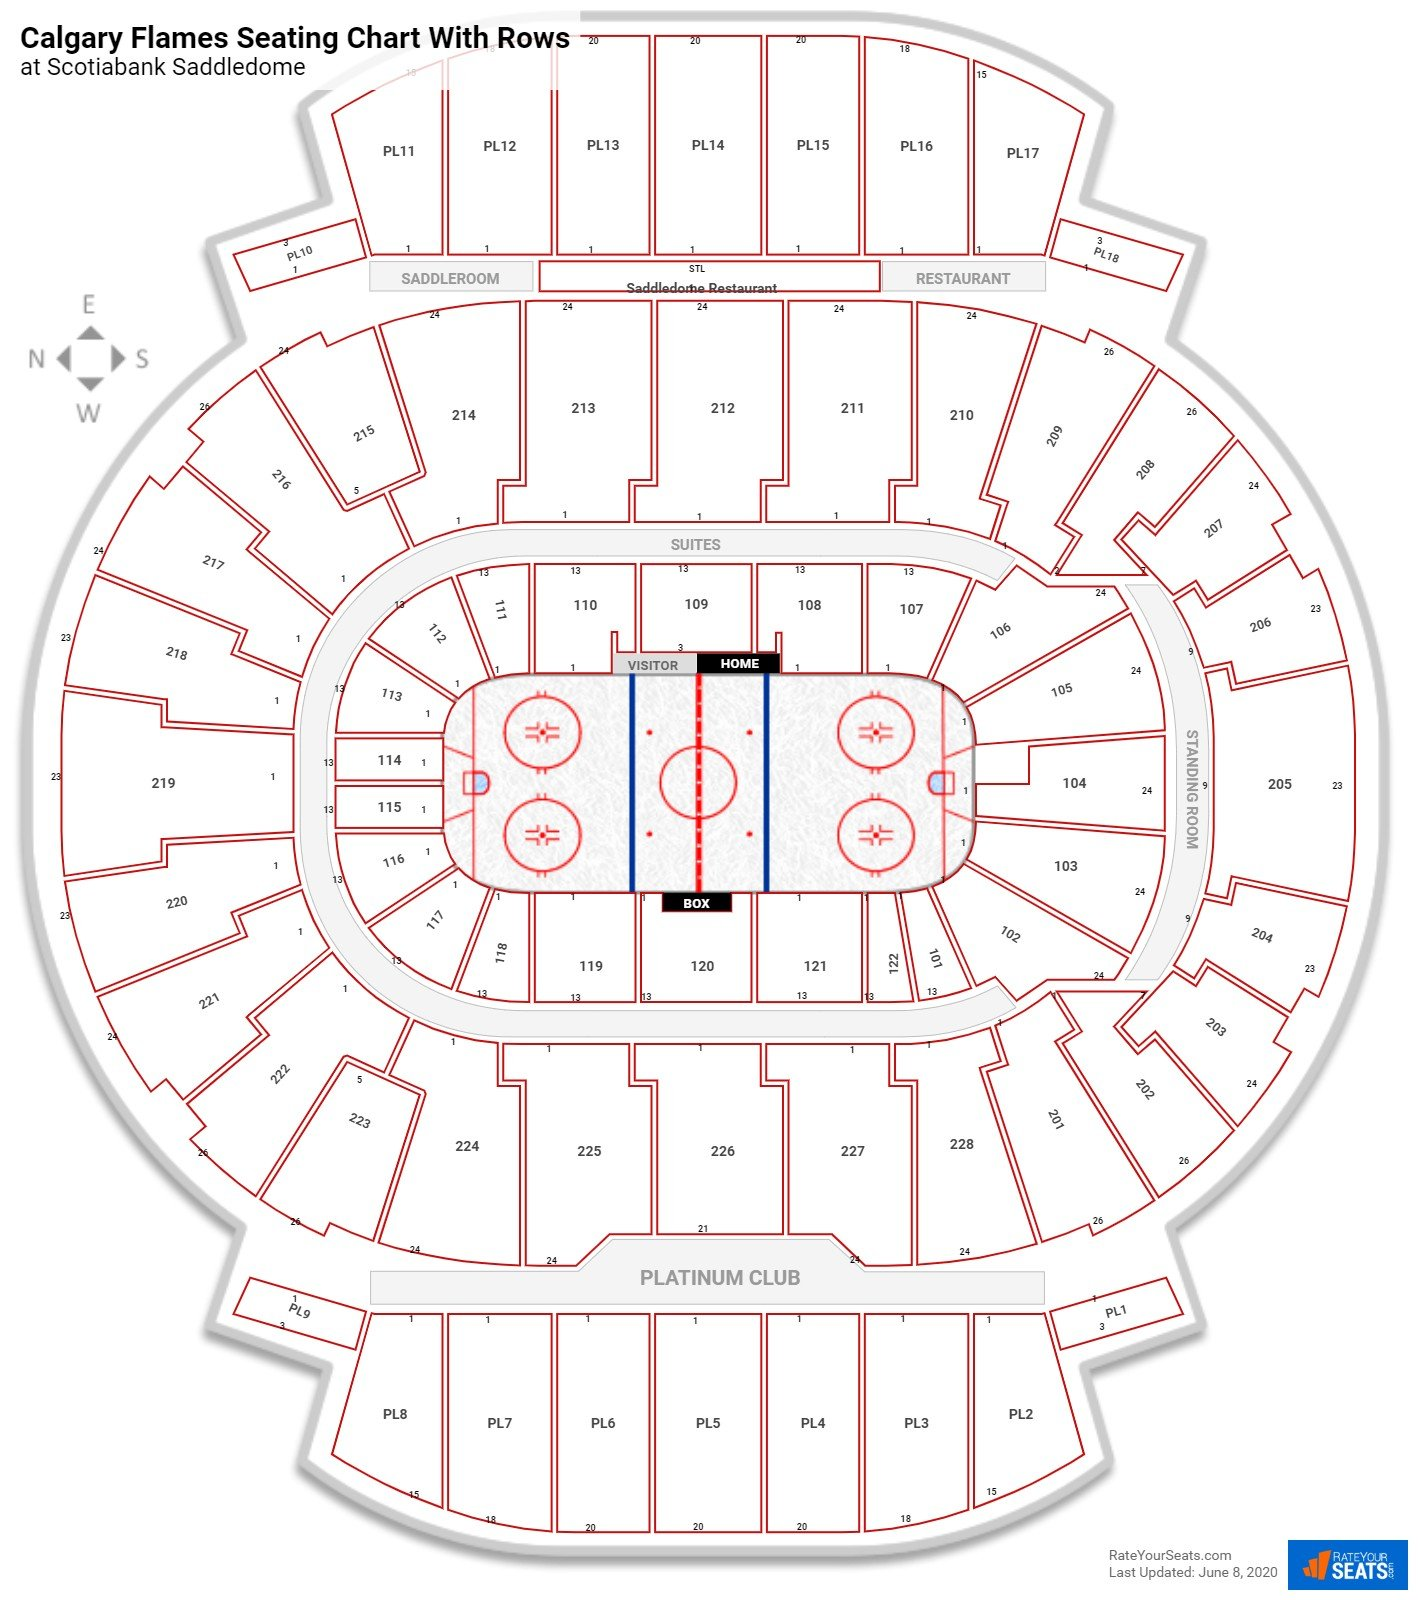 Scotiabank Saddledome seating chart with rows hockey